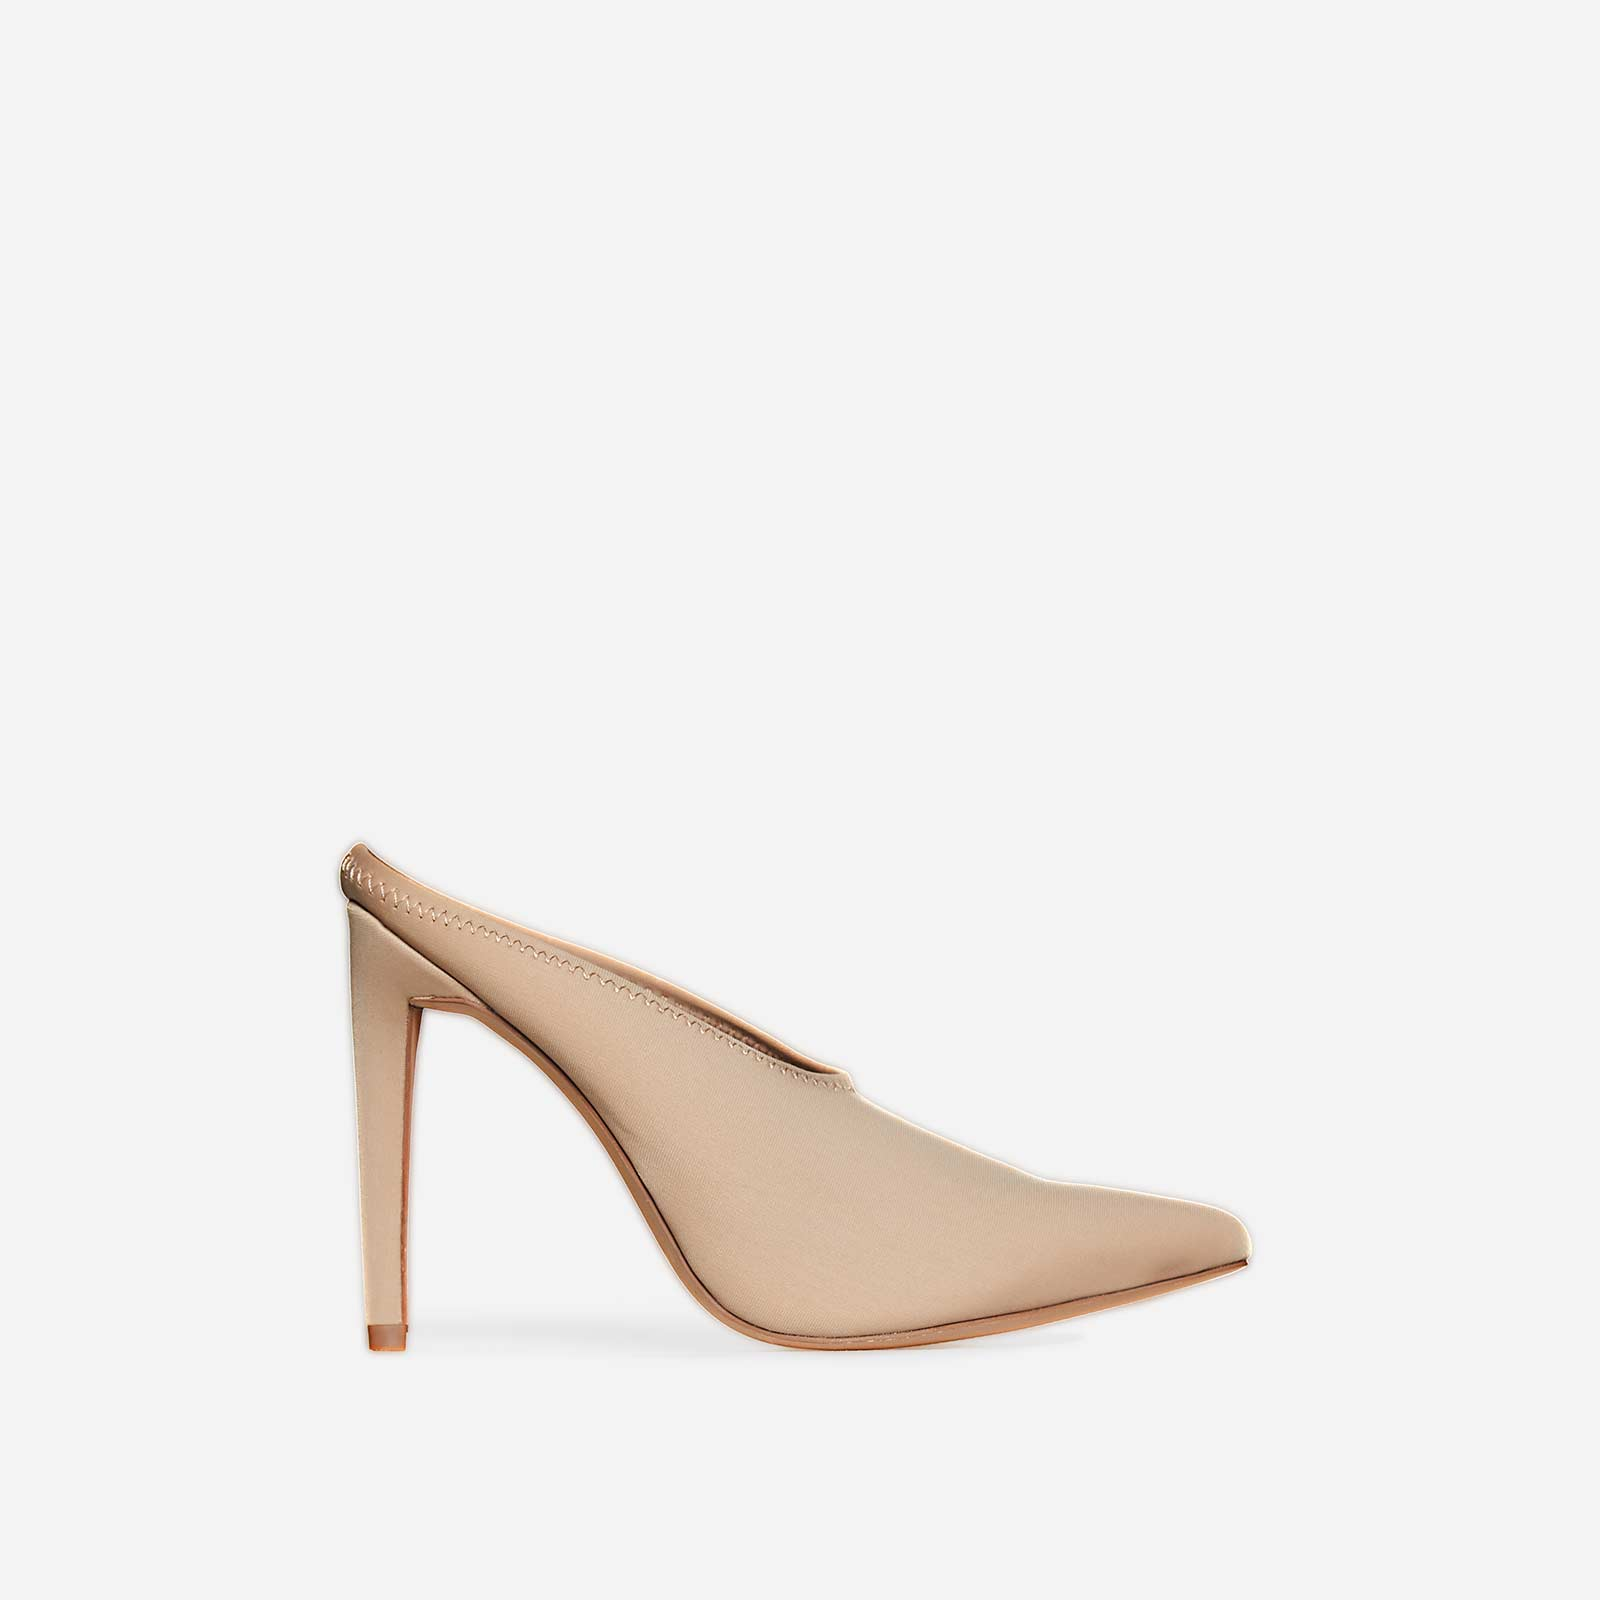 Darla Closed Toe Mule Heel In Nude Lycra